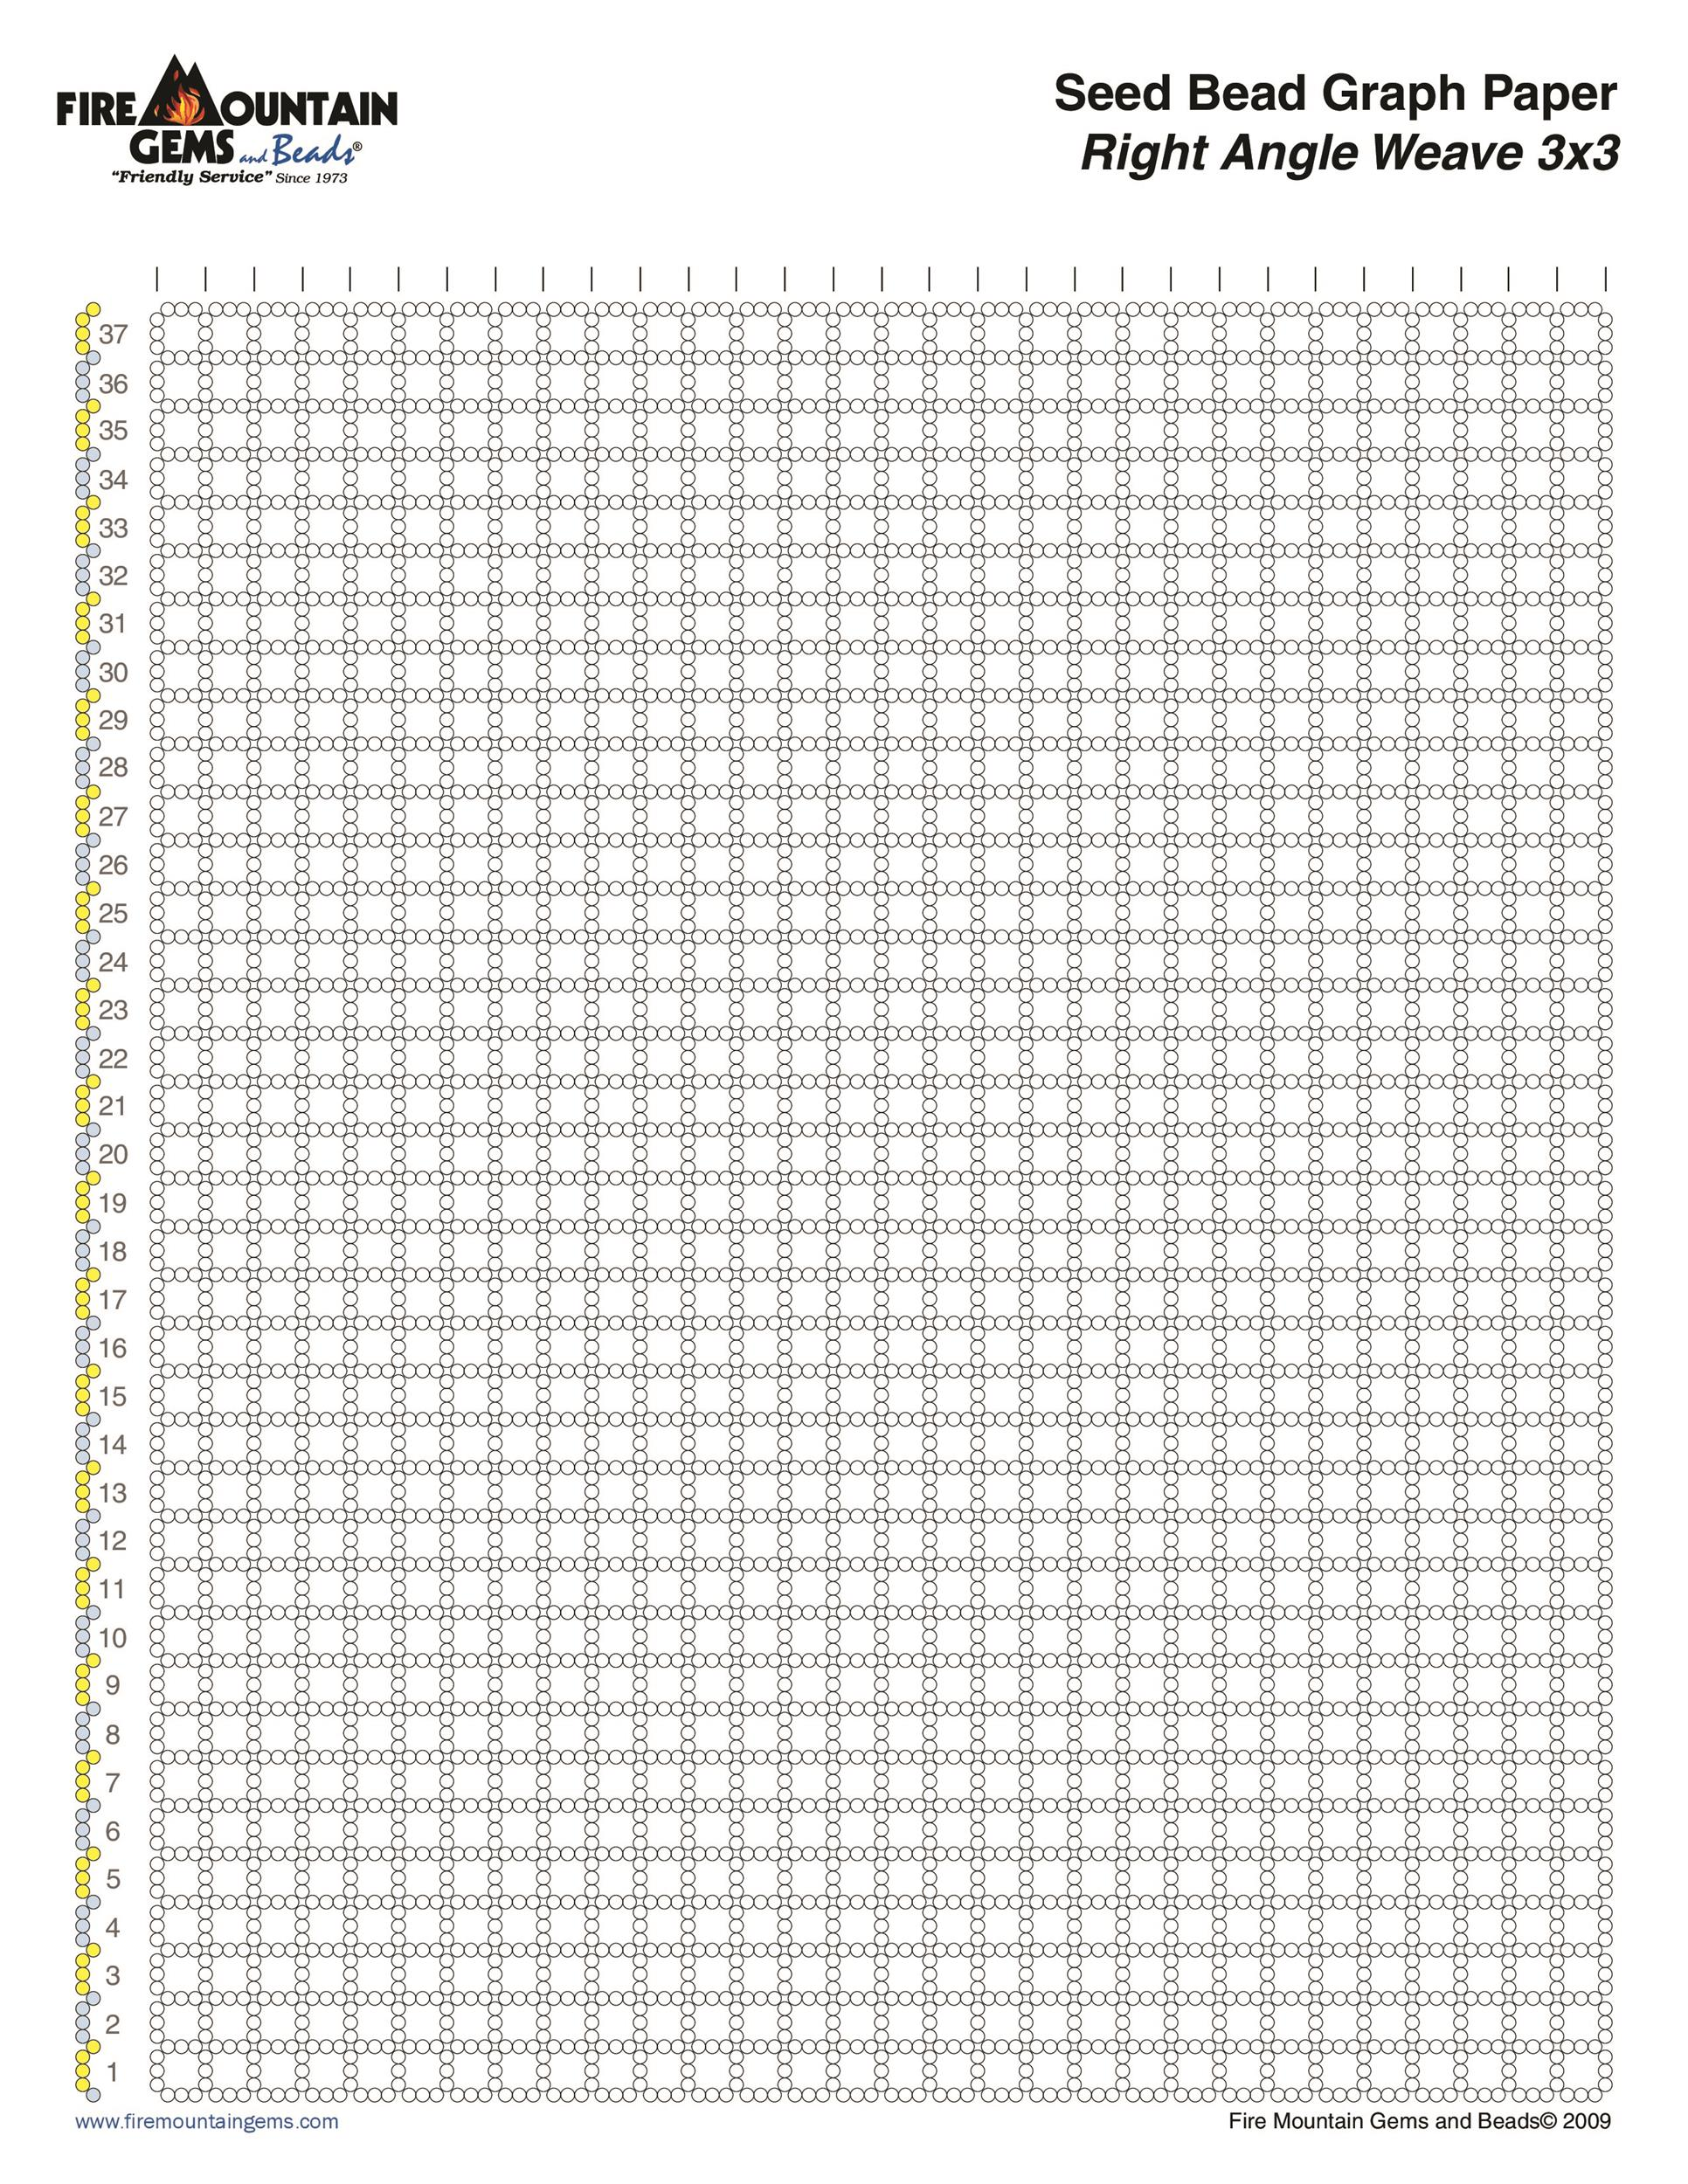 graphic regarding Printable Loose Leaf Paper called 30+ Cost-free Printable Graph Paper Templates (Phrase, PDF) ᐅ